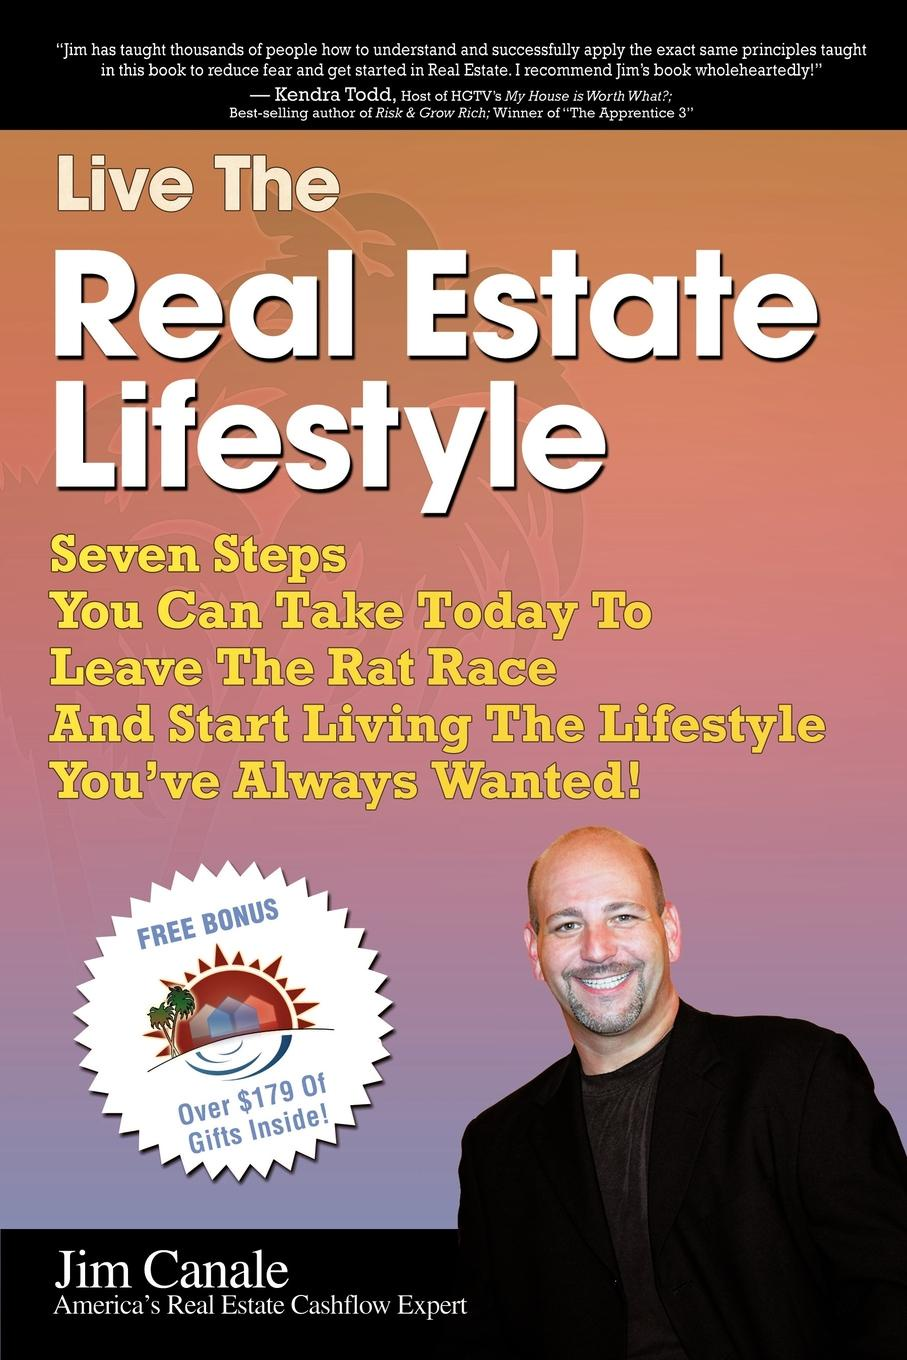 Jim Canale Live the Real Estate Lifestyle. Seven Steps That You Can Take To Leave The 'Rat Race' And Start Living The Lifestyle You've Always Wanted! seven steps for handling grief